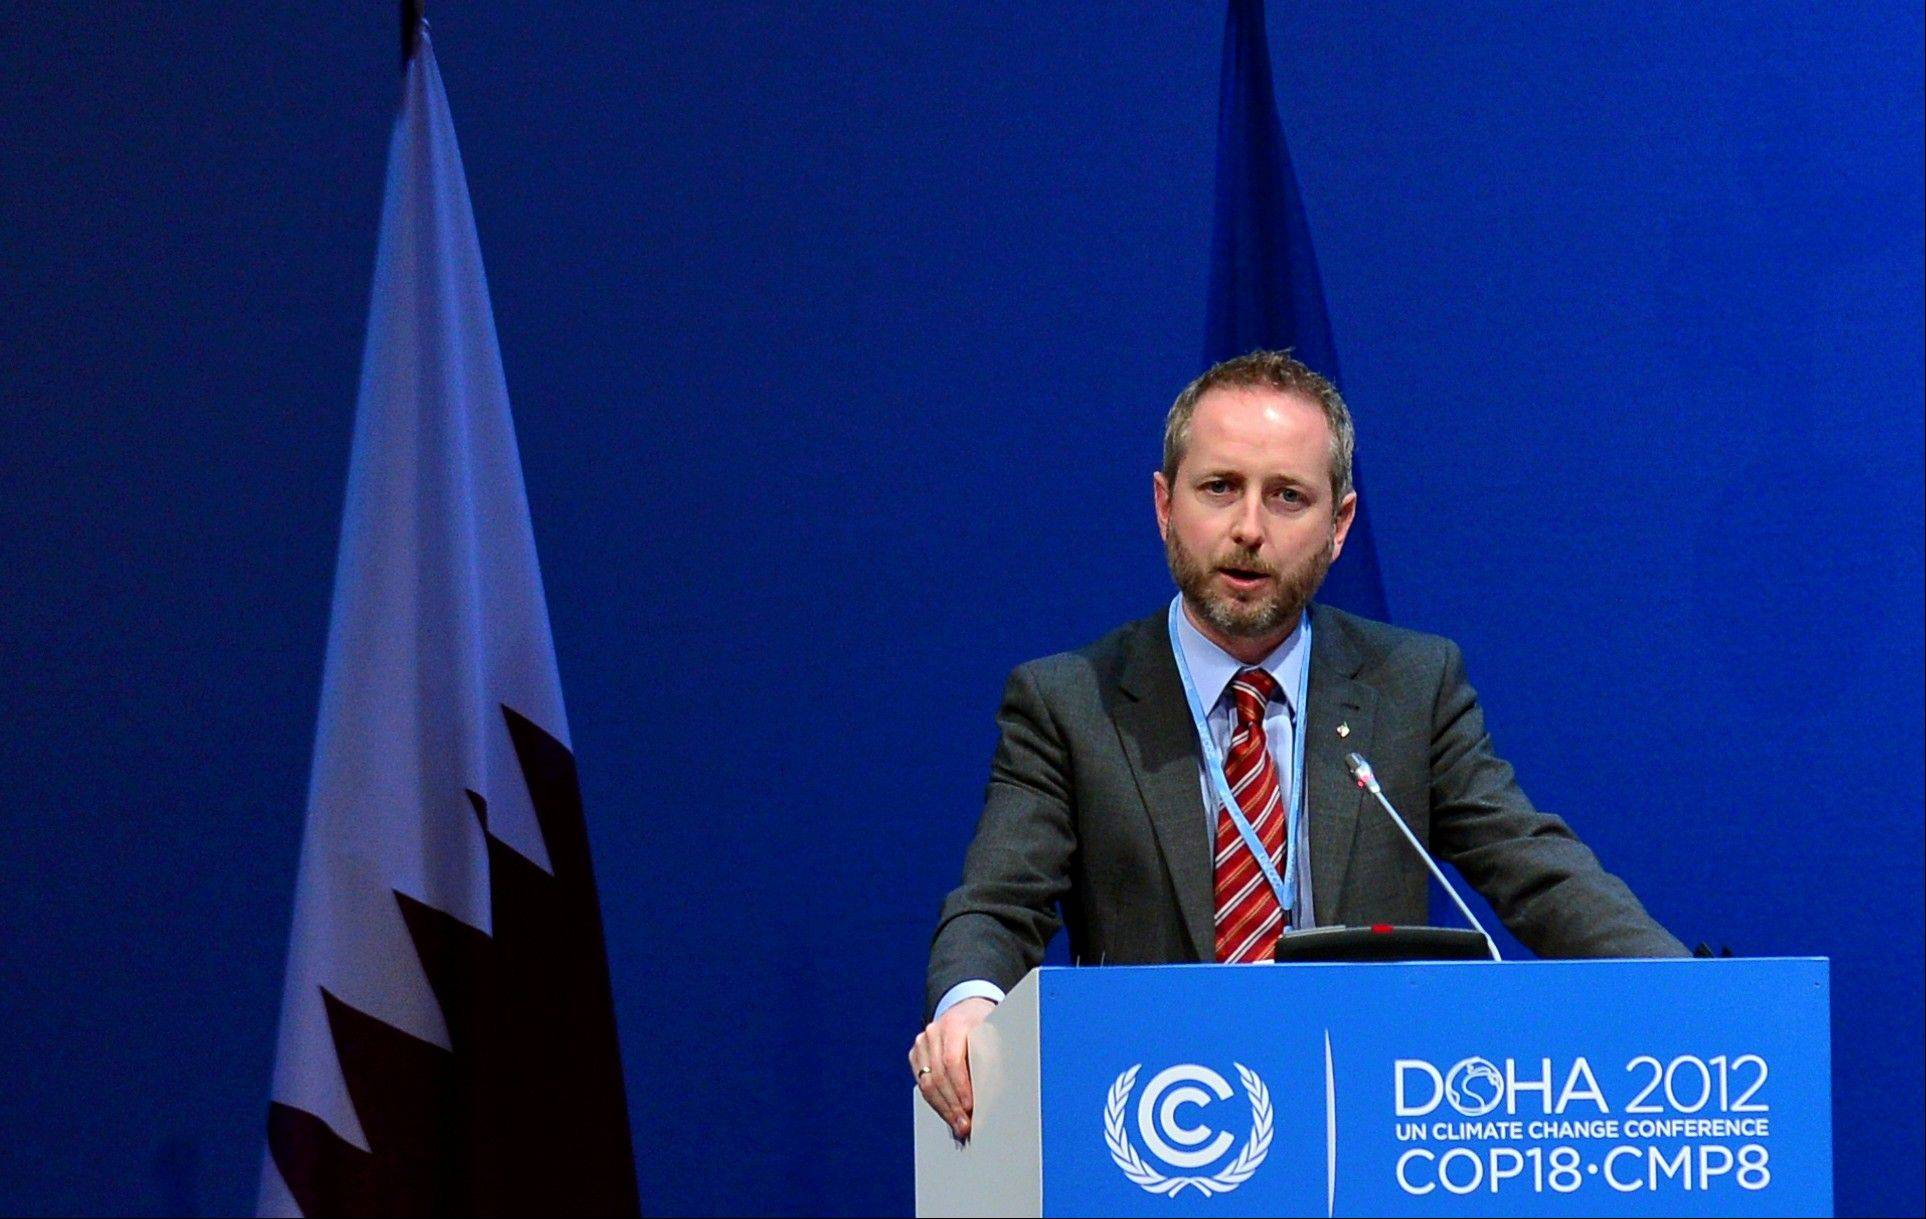 Norwegian Environmental Minister B�rd Vegar Solhjell addresses delegates Wednesday at the U.N. climate talks in Doha. The delegates are aiming to seal an interim pact by December 7 on reducing Earth-warming greenhouse gas emissions.